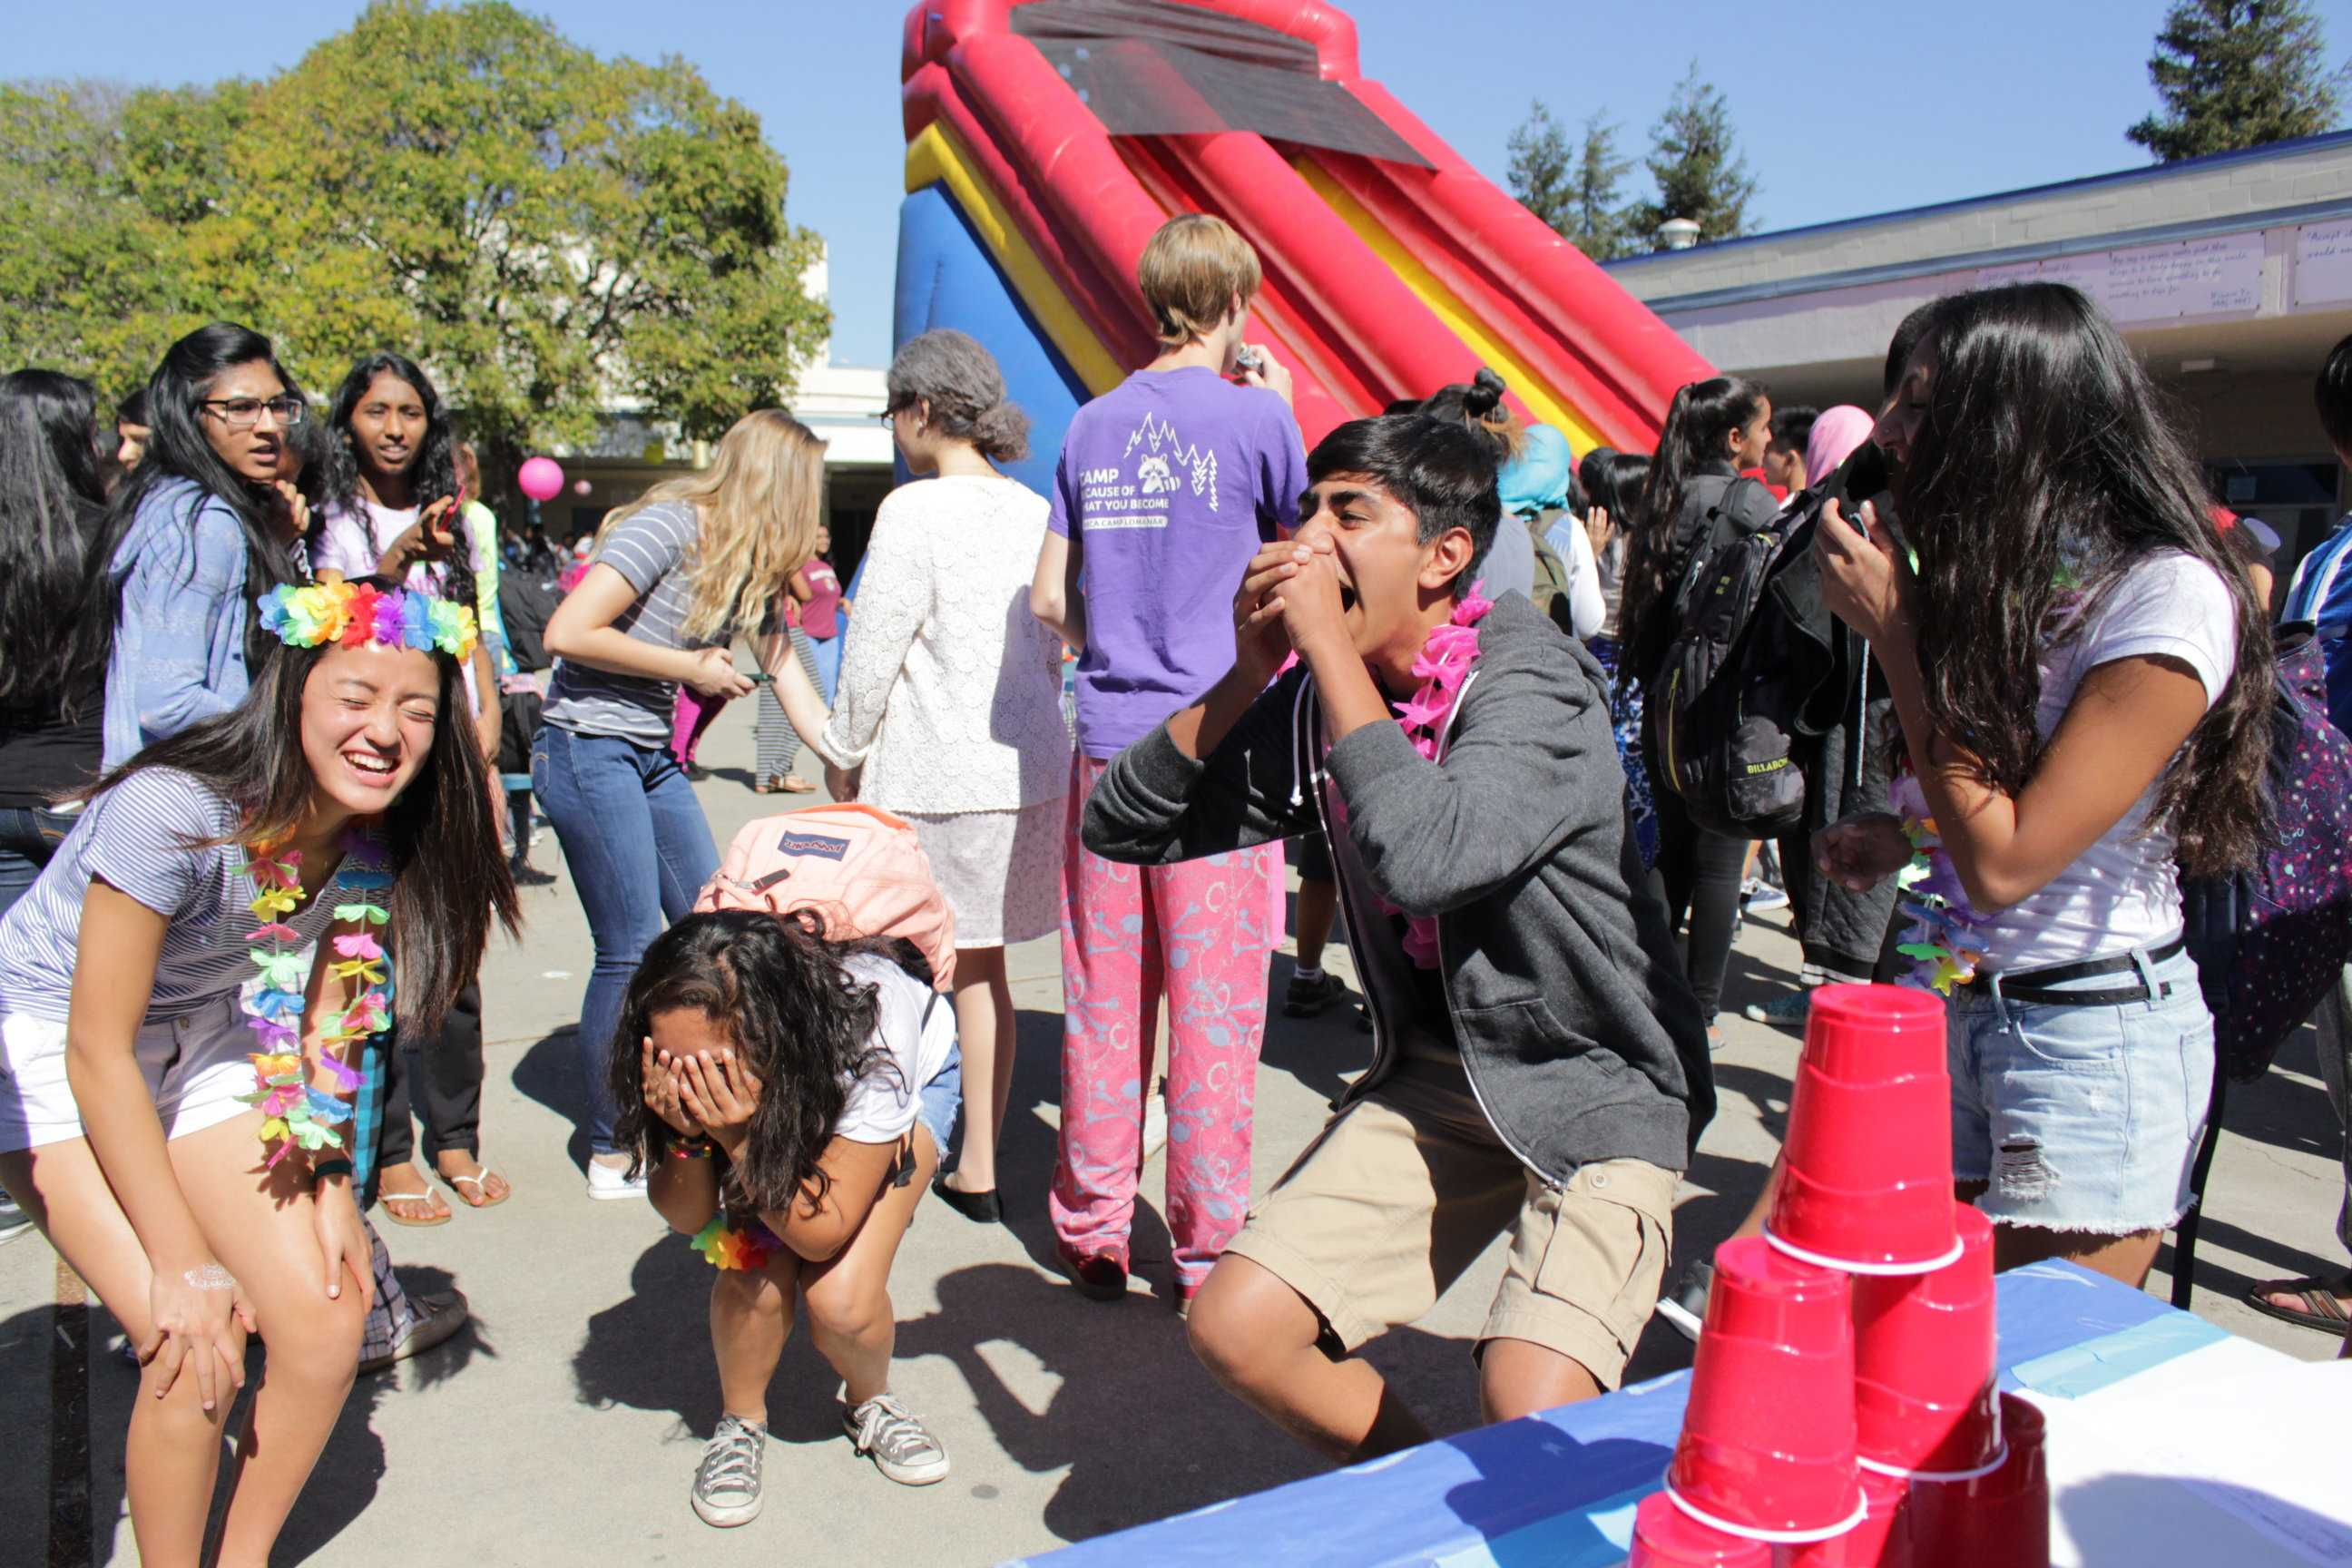 Carnival participants react to being unable to knock down the stack of cups at the Core Club booth. (Photo: Ayush Patel)